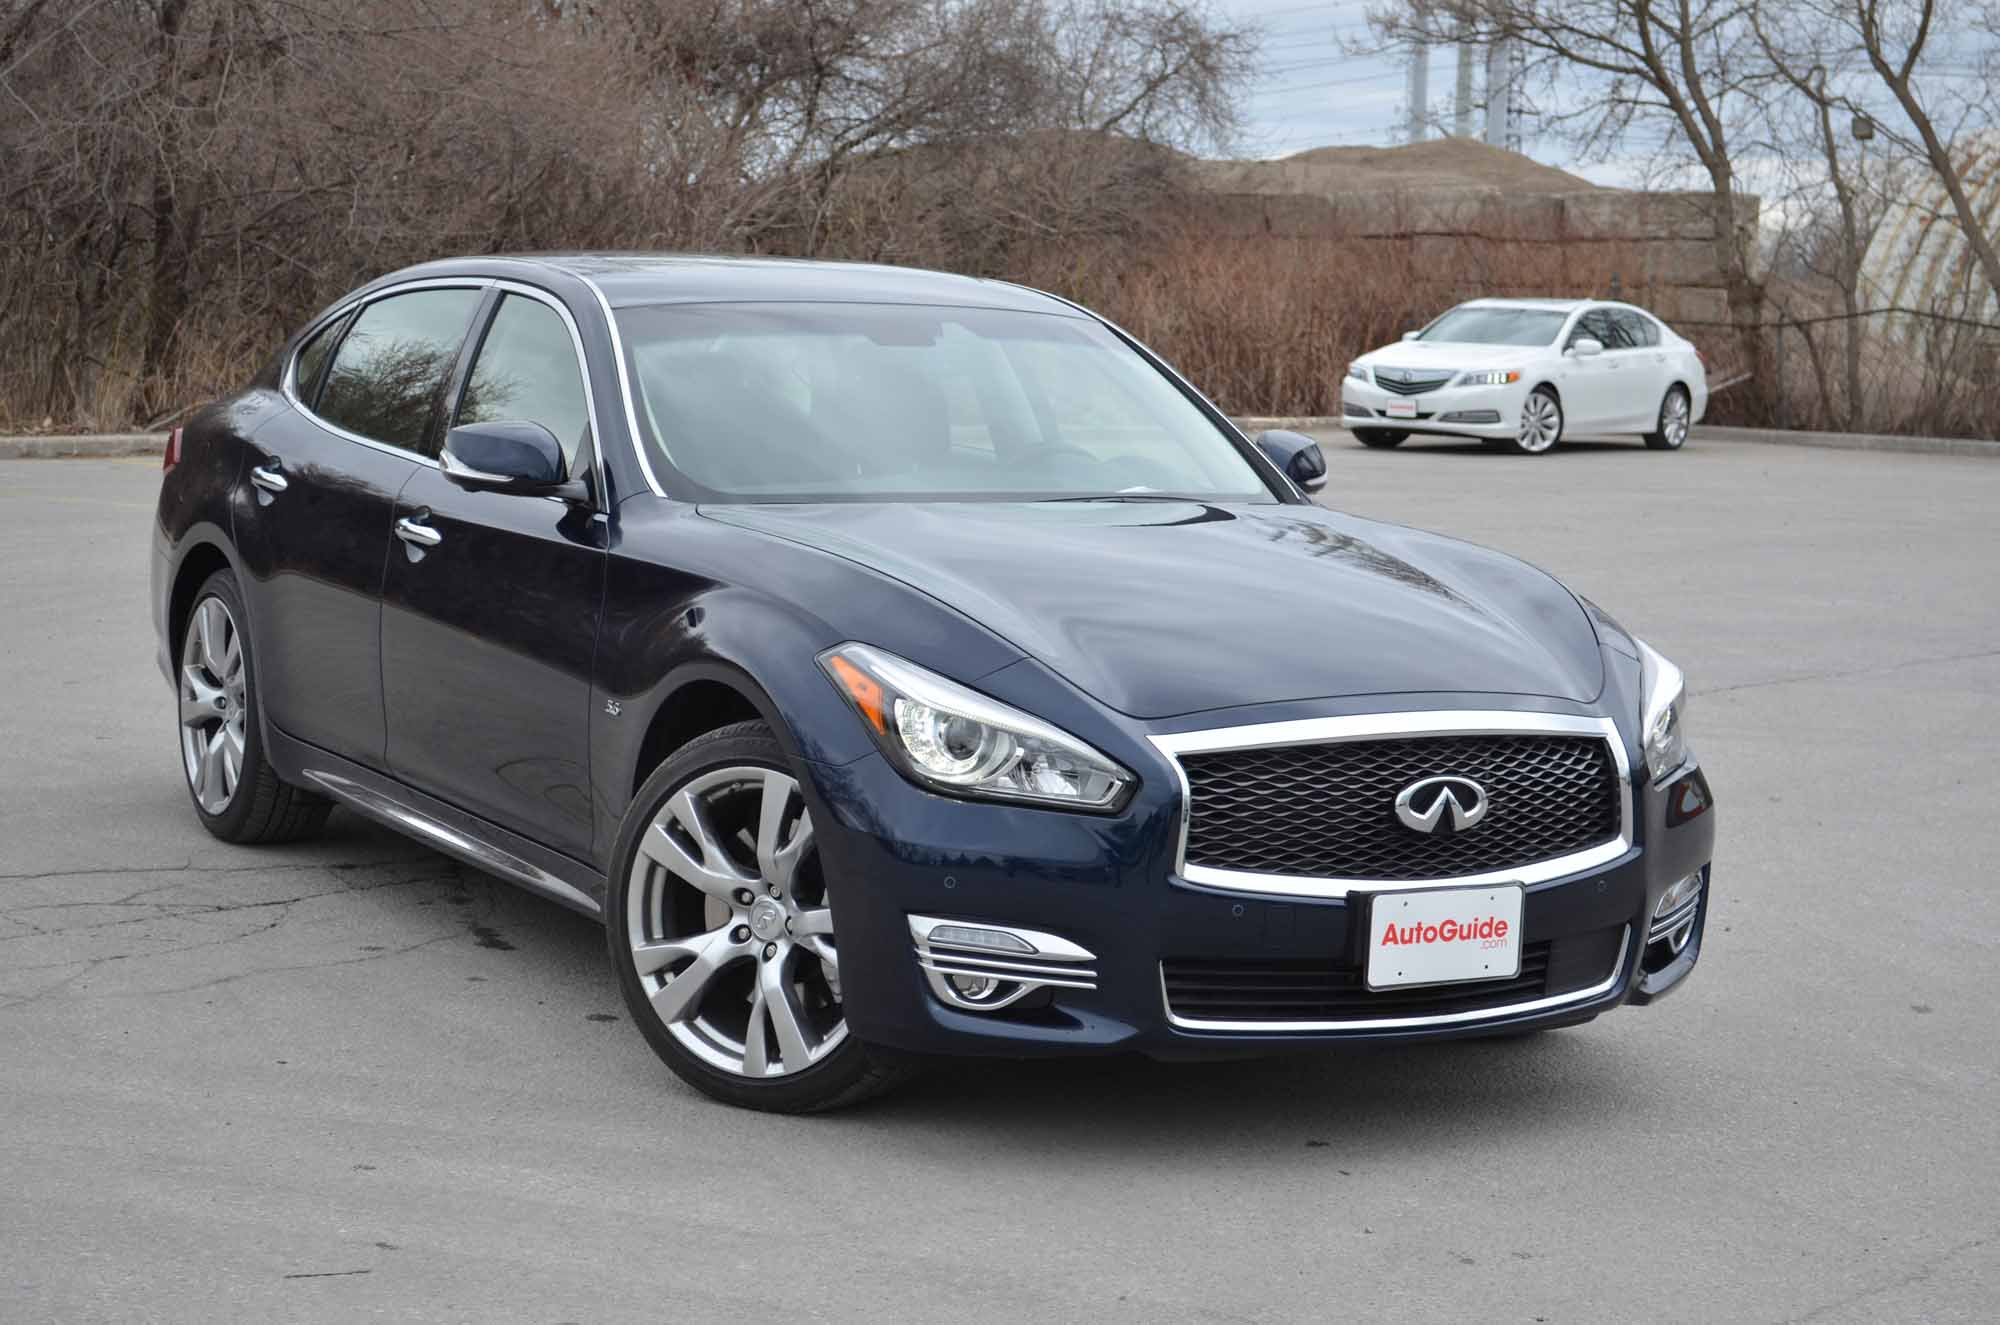 Infiniti Q70l 2015 | www.imgkid.com - The Image Kid Has It!